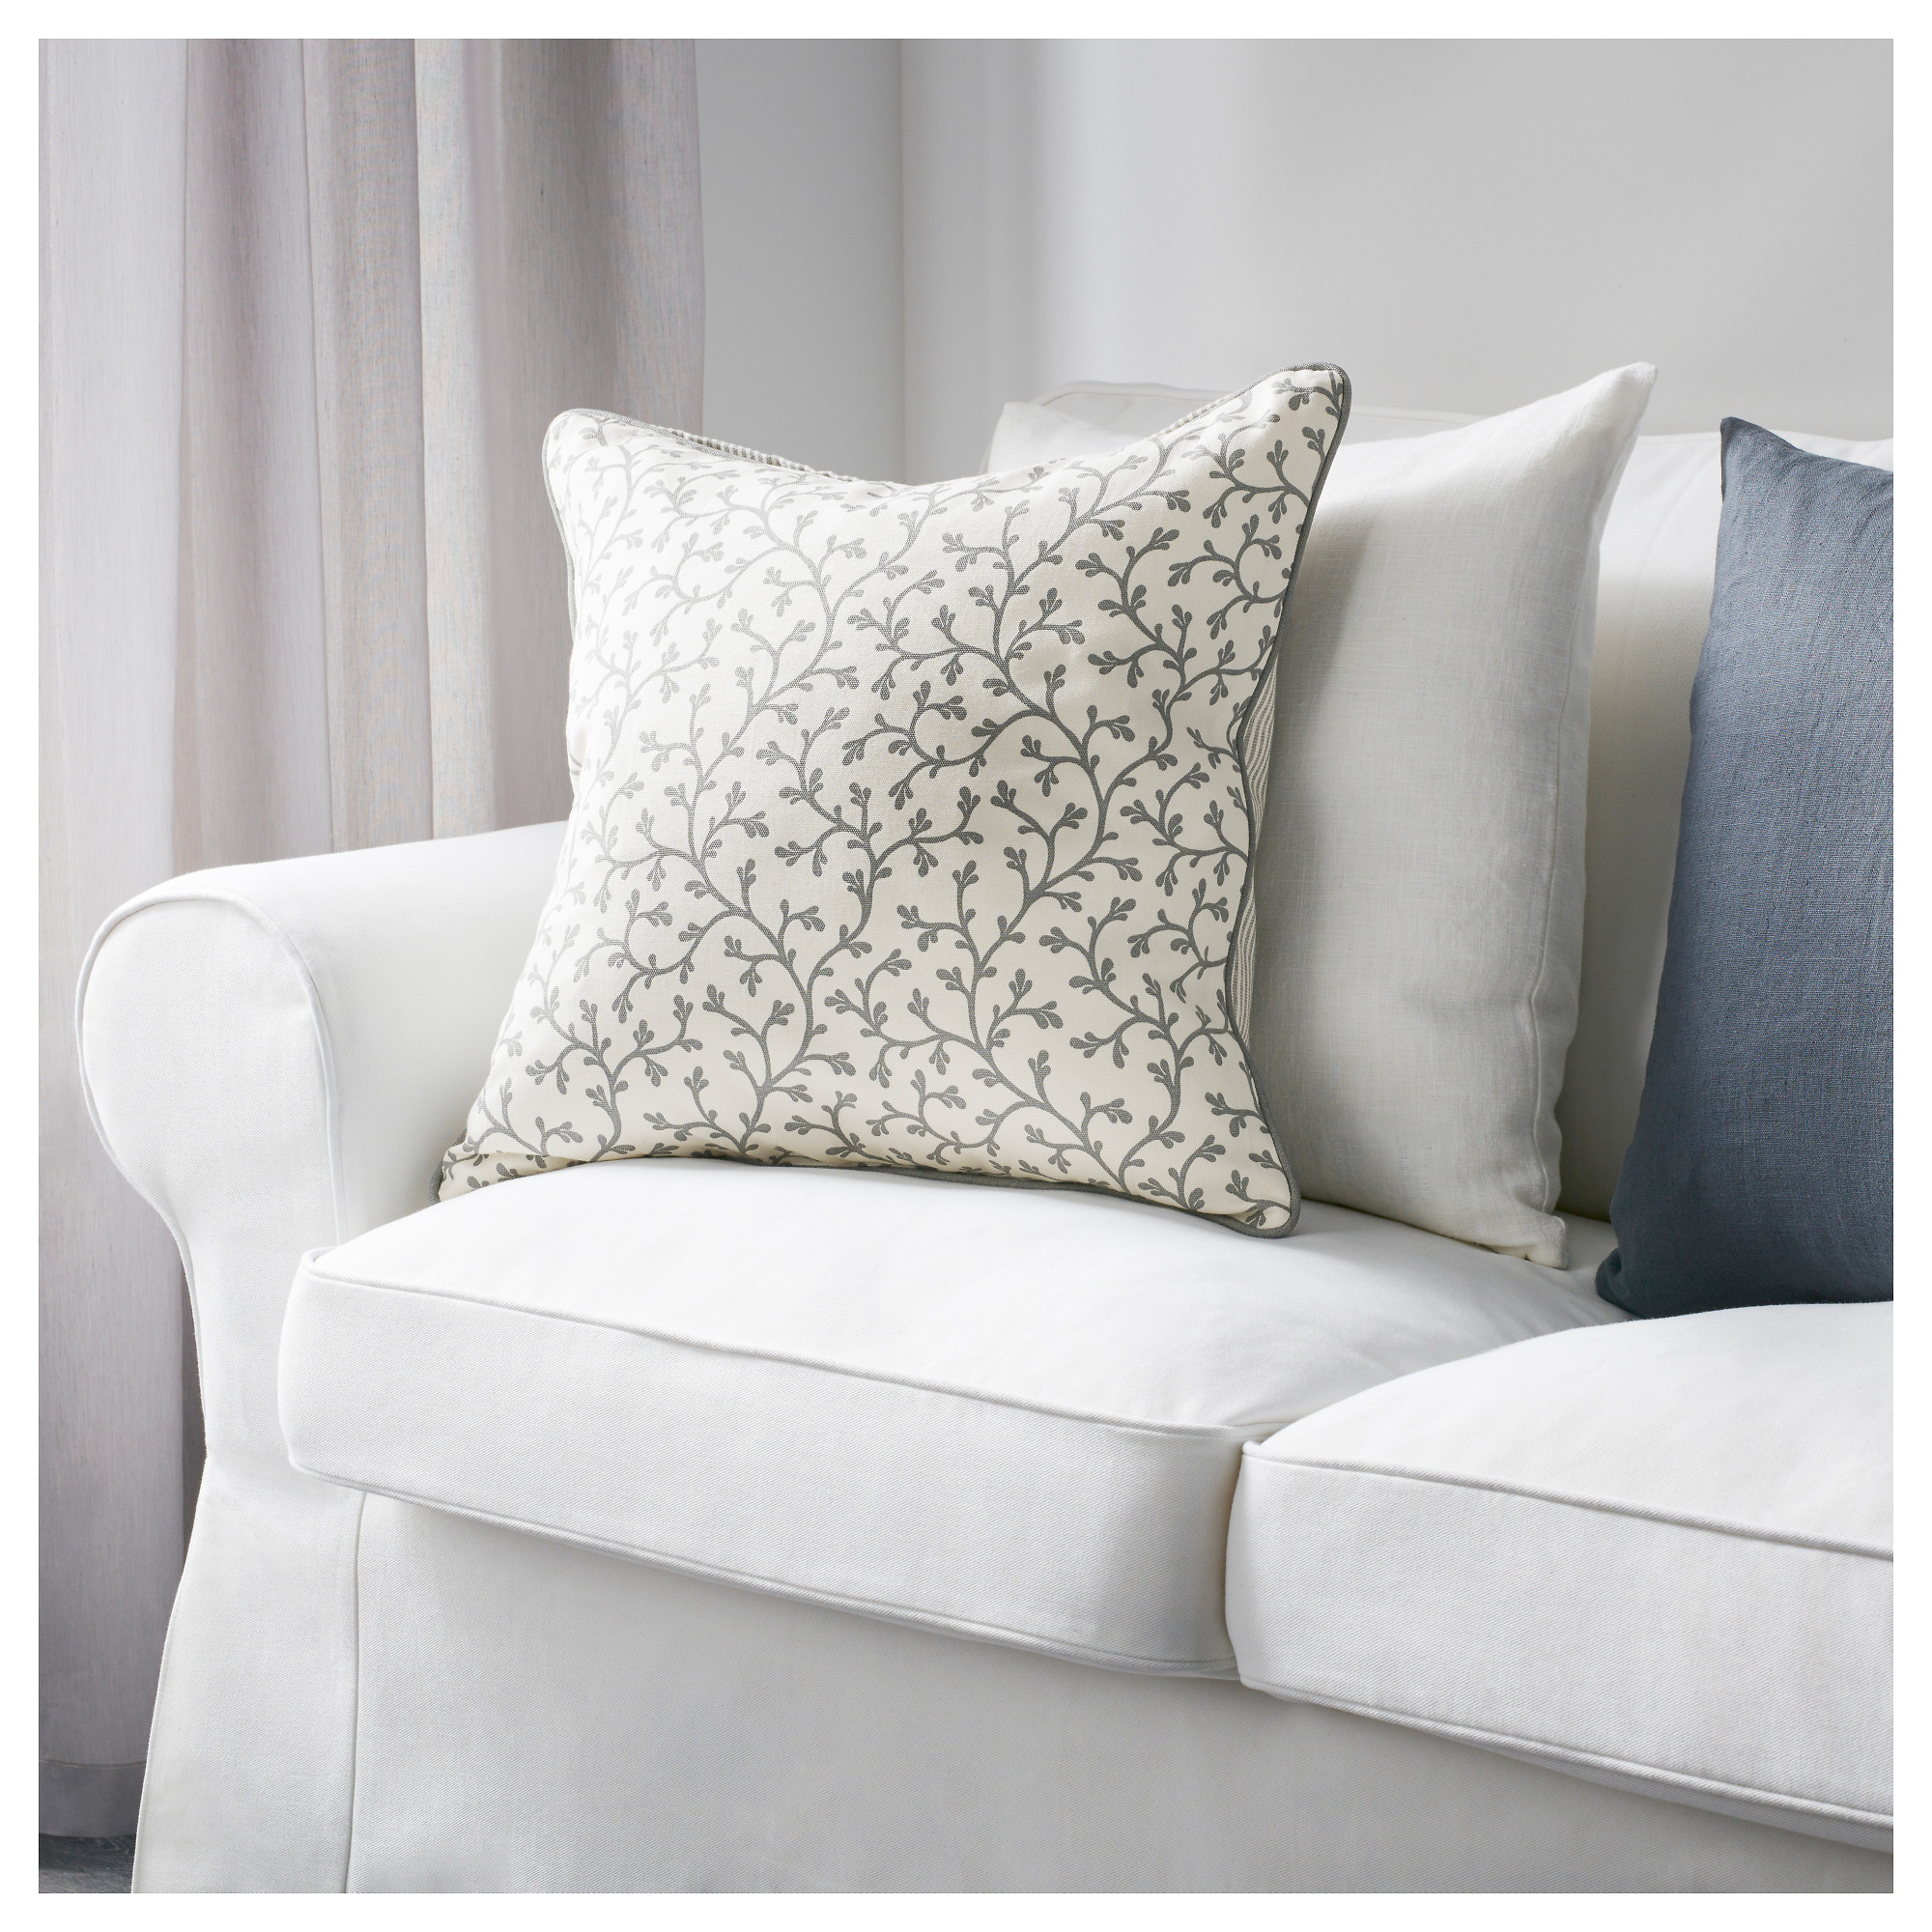 LUNG–RT Cushion cover IKEA